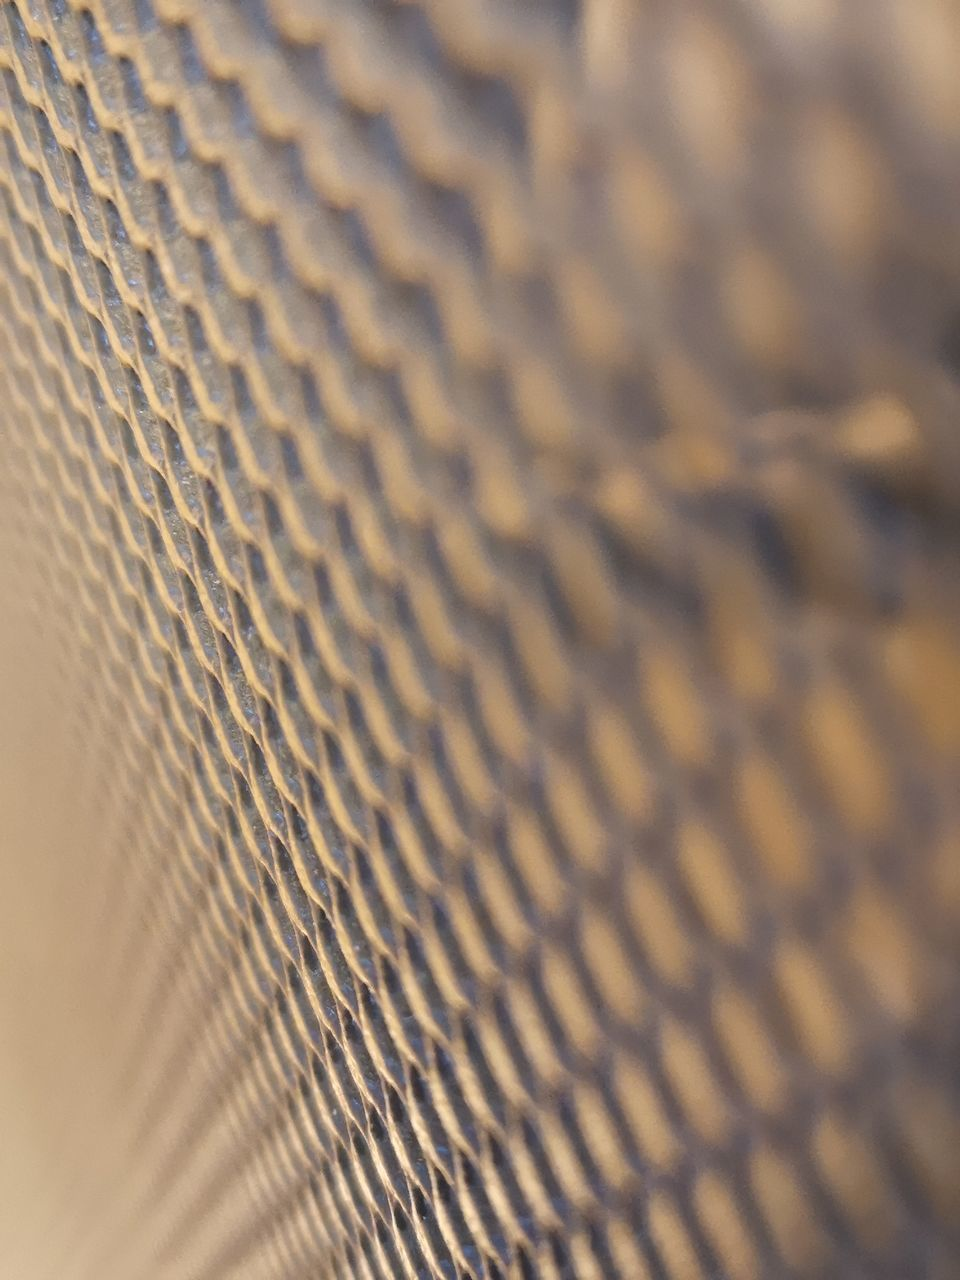 backgrounds, full frame, pattern, selective focus, textured, close-up, no people, repetition, metal, grid, abstract, indoors, textile, technology, still life, brown, high angle view, music, detail